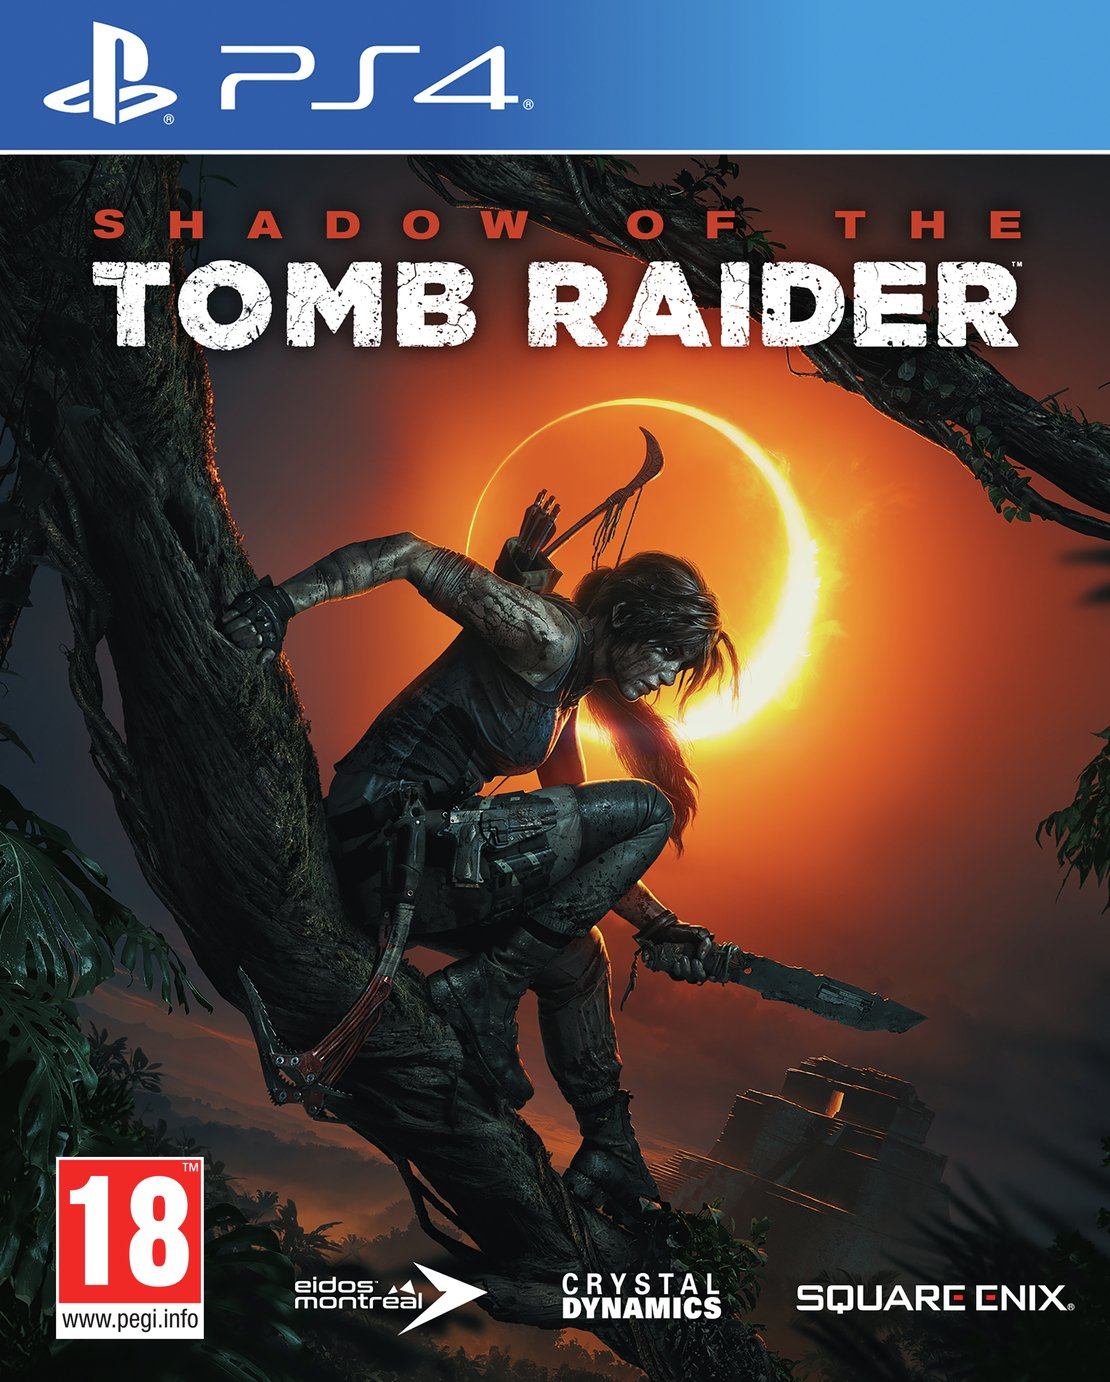 Shadow of the Tomb Raider PS4 Game from tomb raider